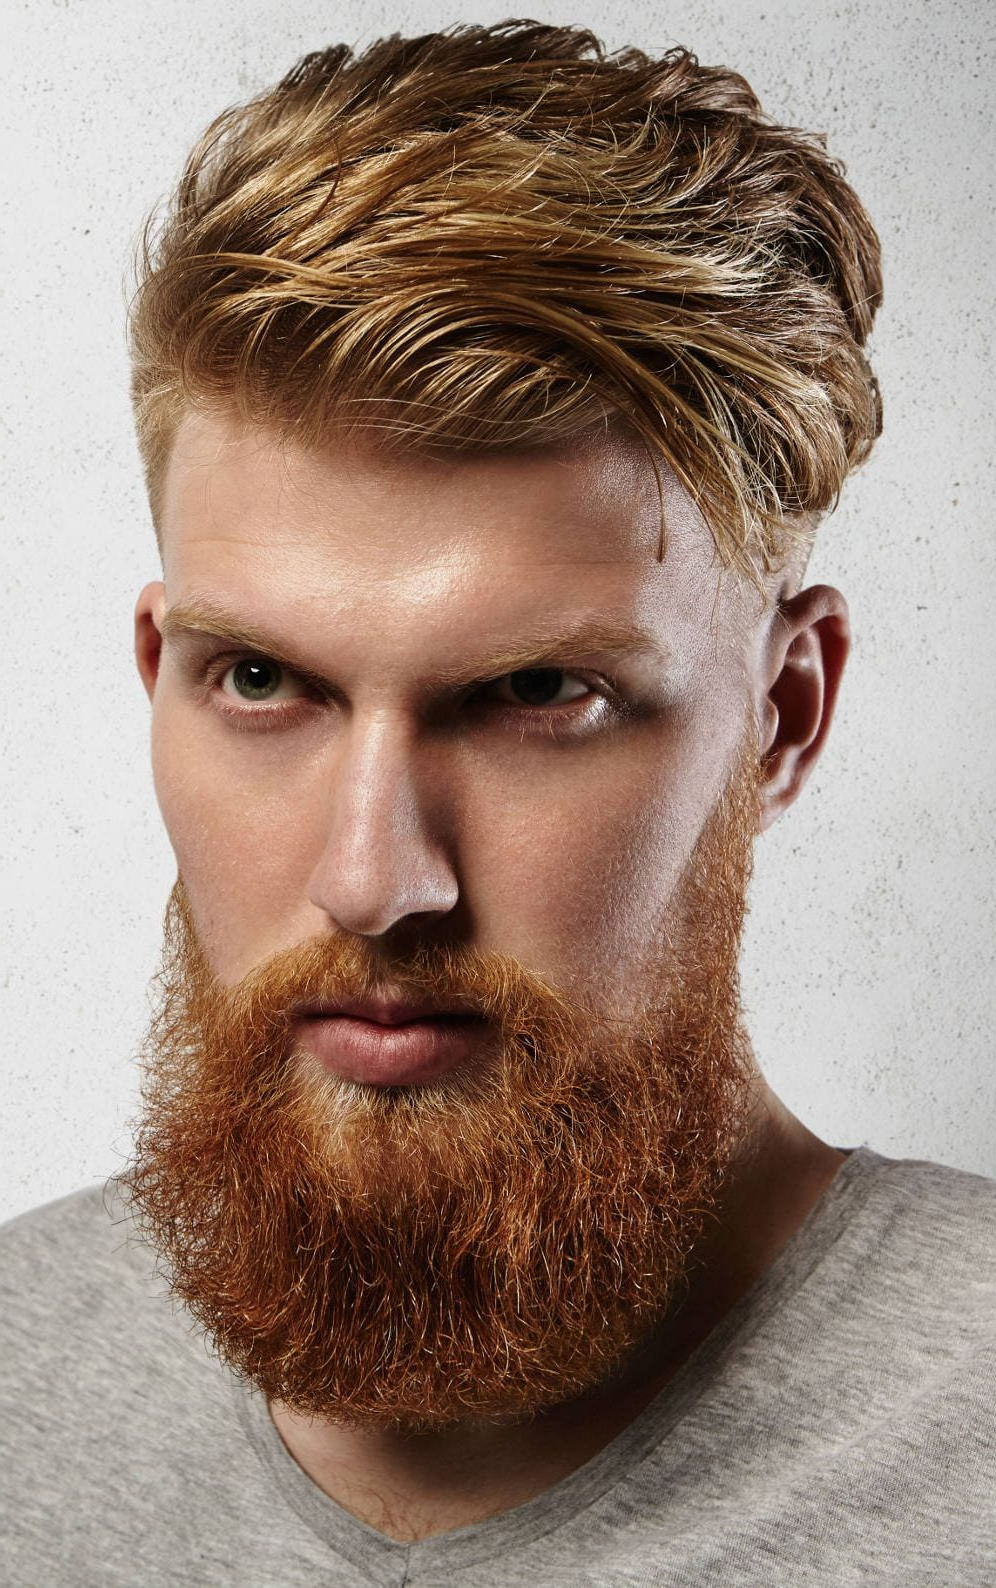 Trendy Medium Hairstyles With Red Hair With 21 Eye Catching Red Hair Men's Hairstyles (Ginger Hairstyles) (View 19 of 20)